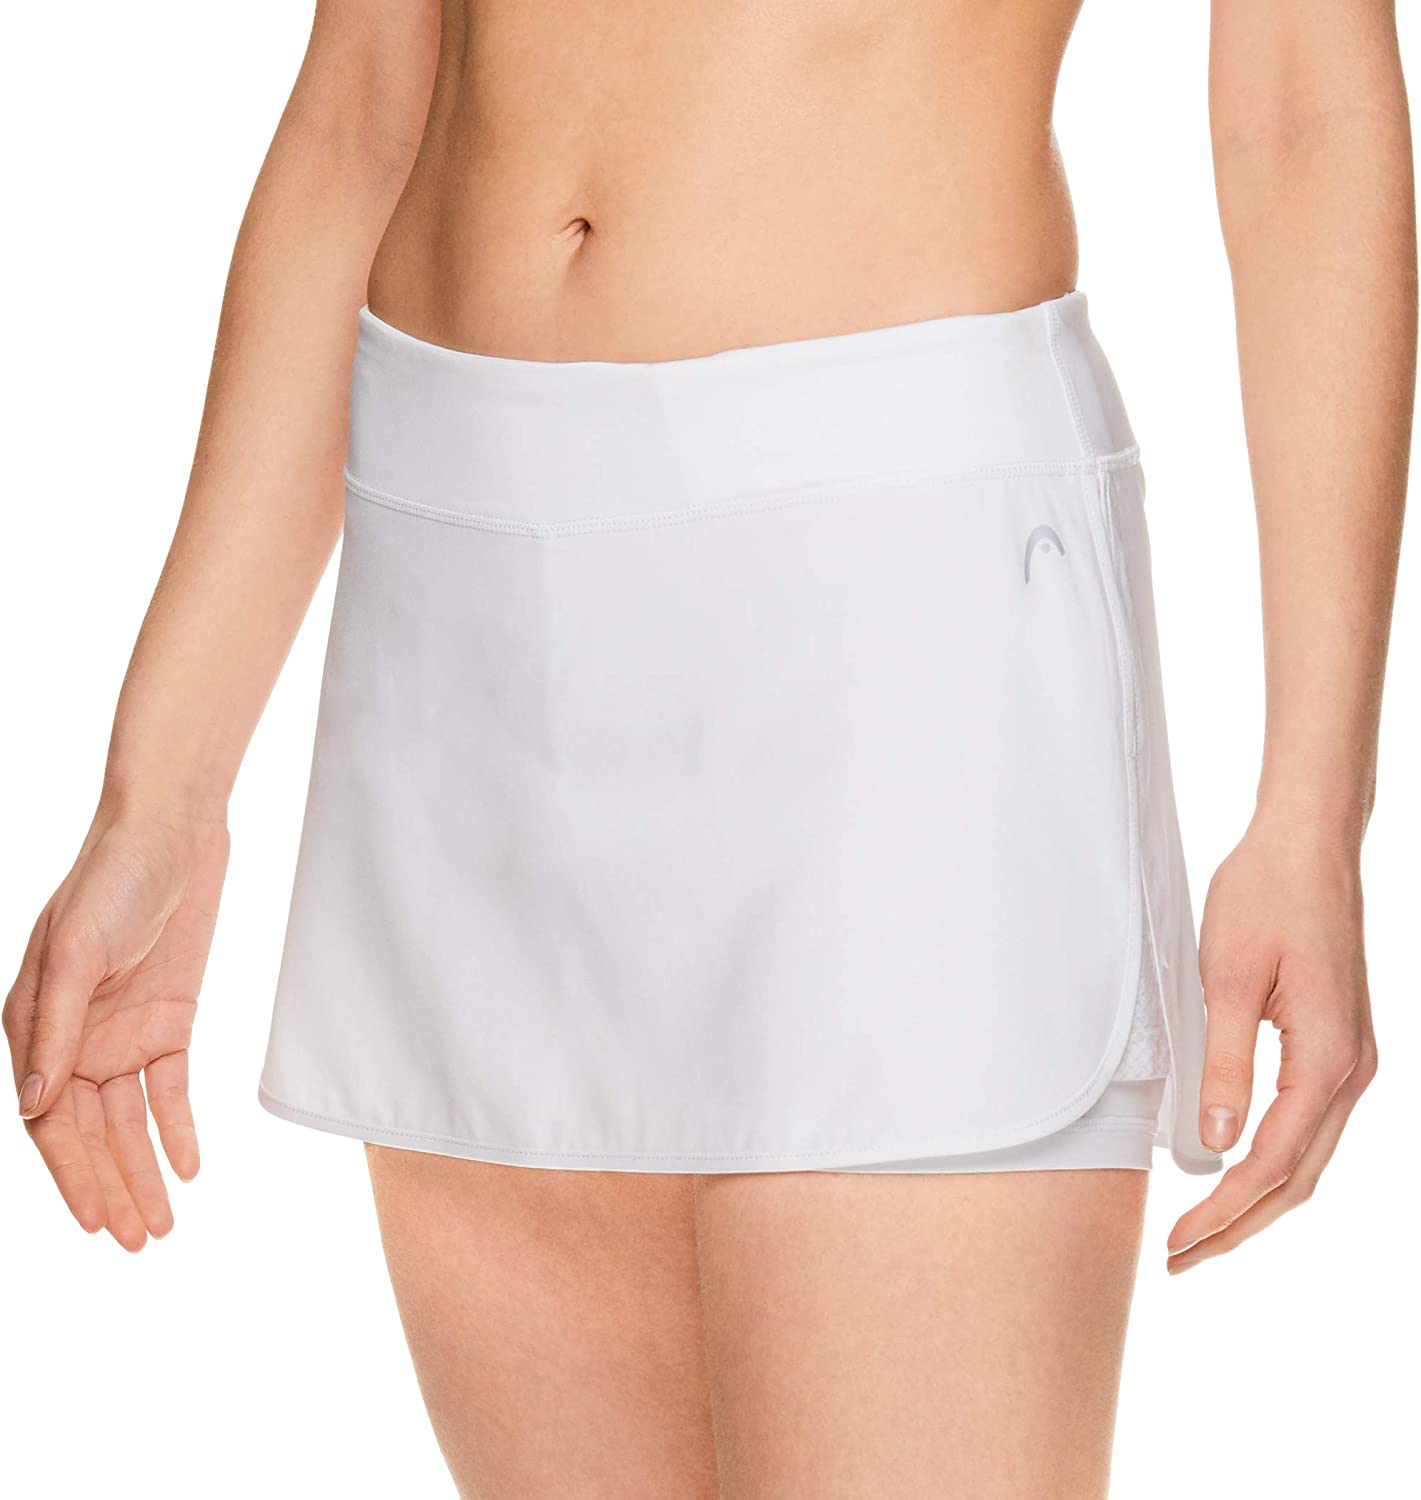 HEAD Womens Athletic Tennis Skort Performance Training /& Running Skirt